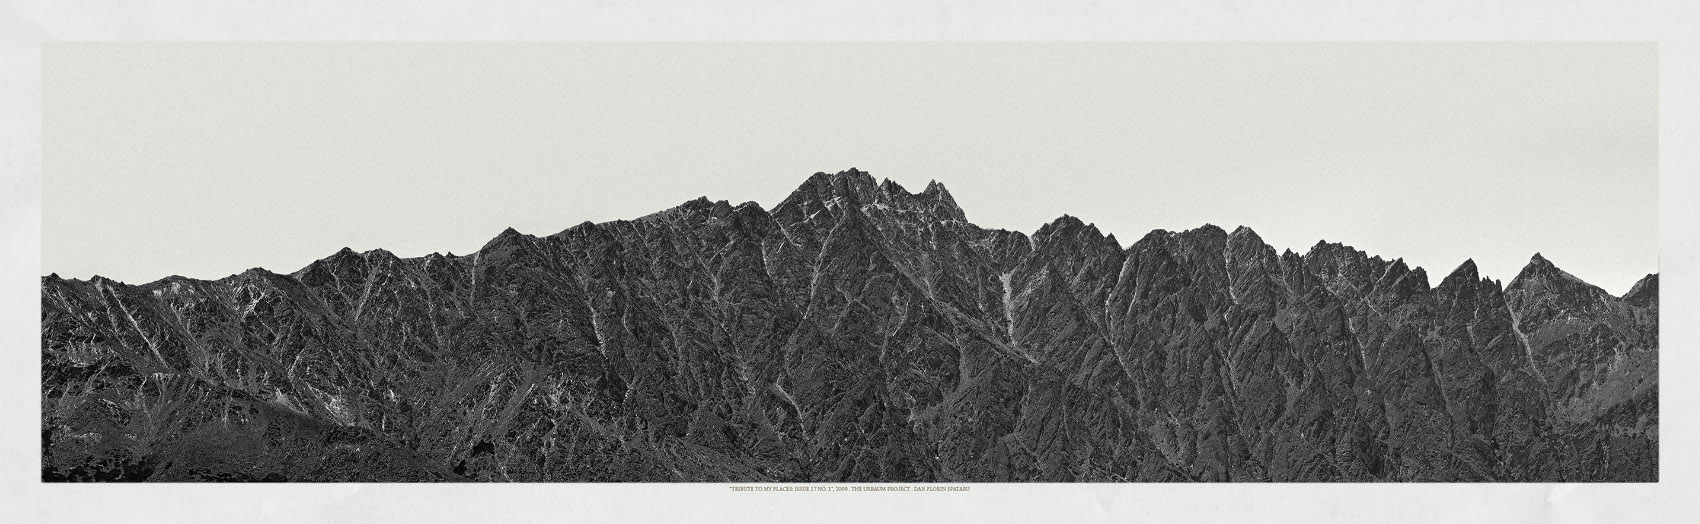 solely mountains #1/6